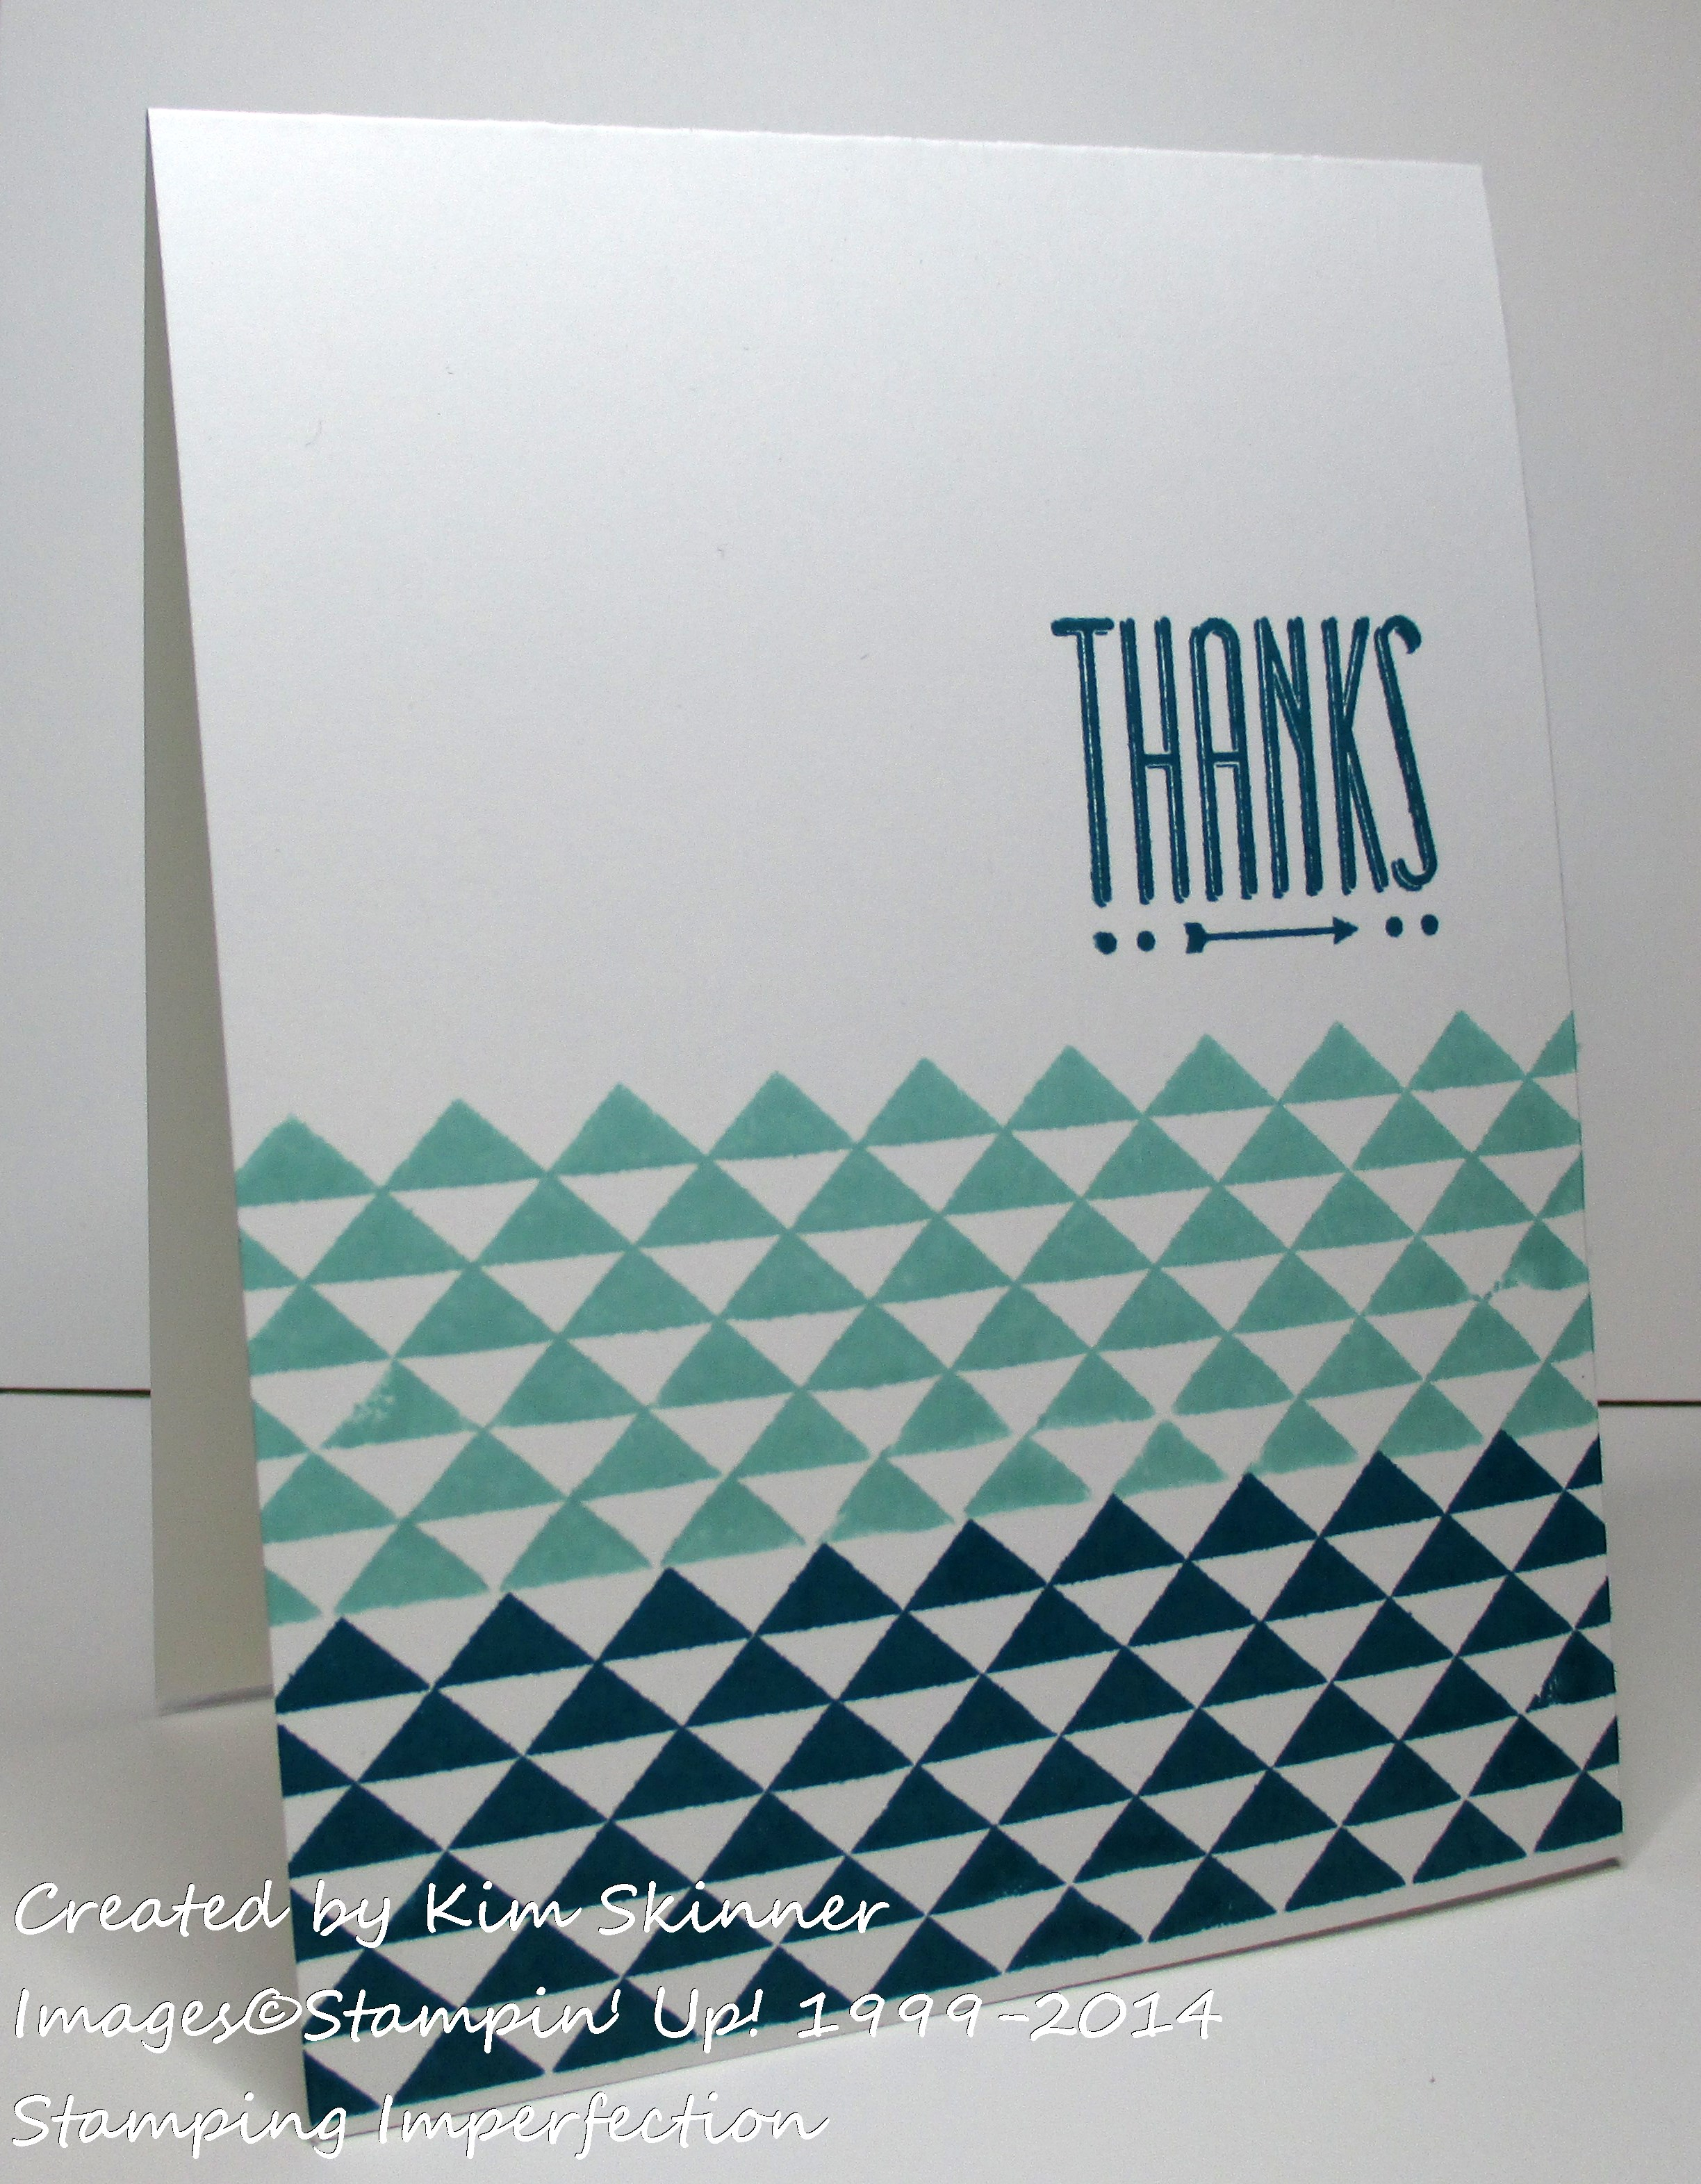 Stamping Imperfection super simple card for any occasion!